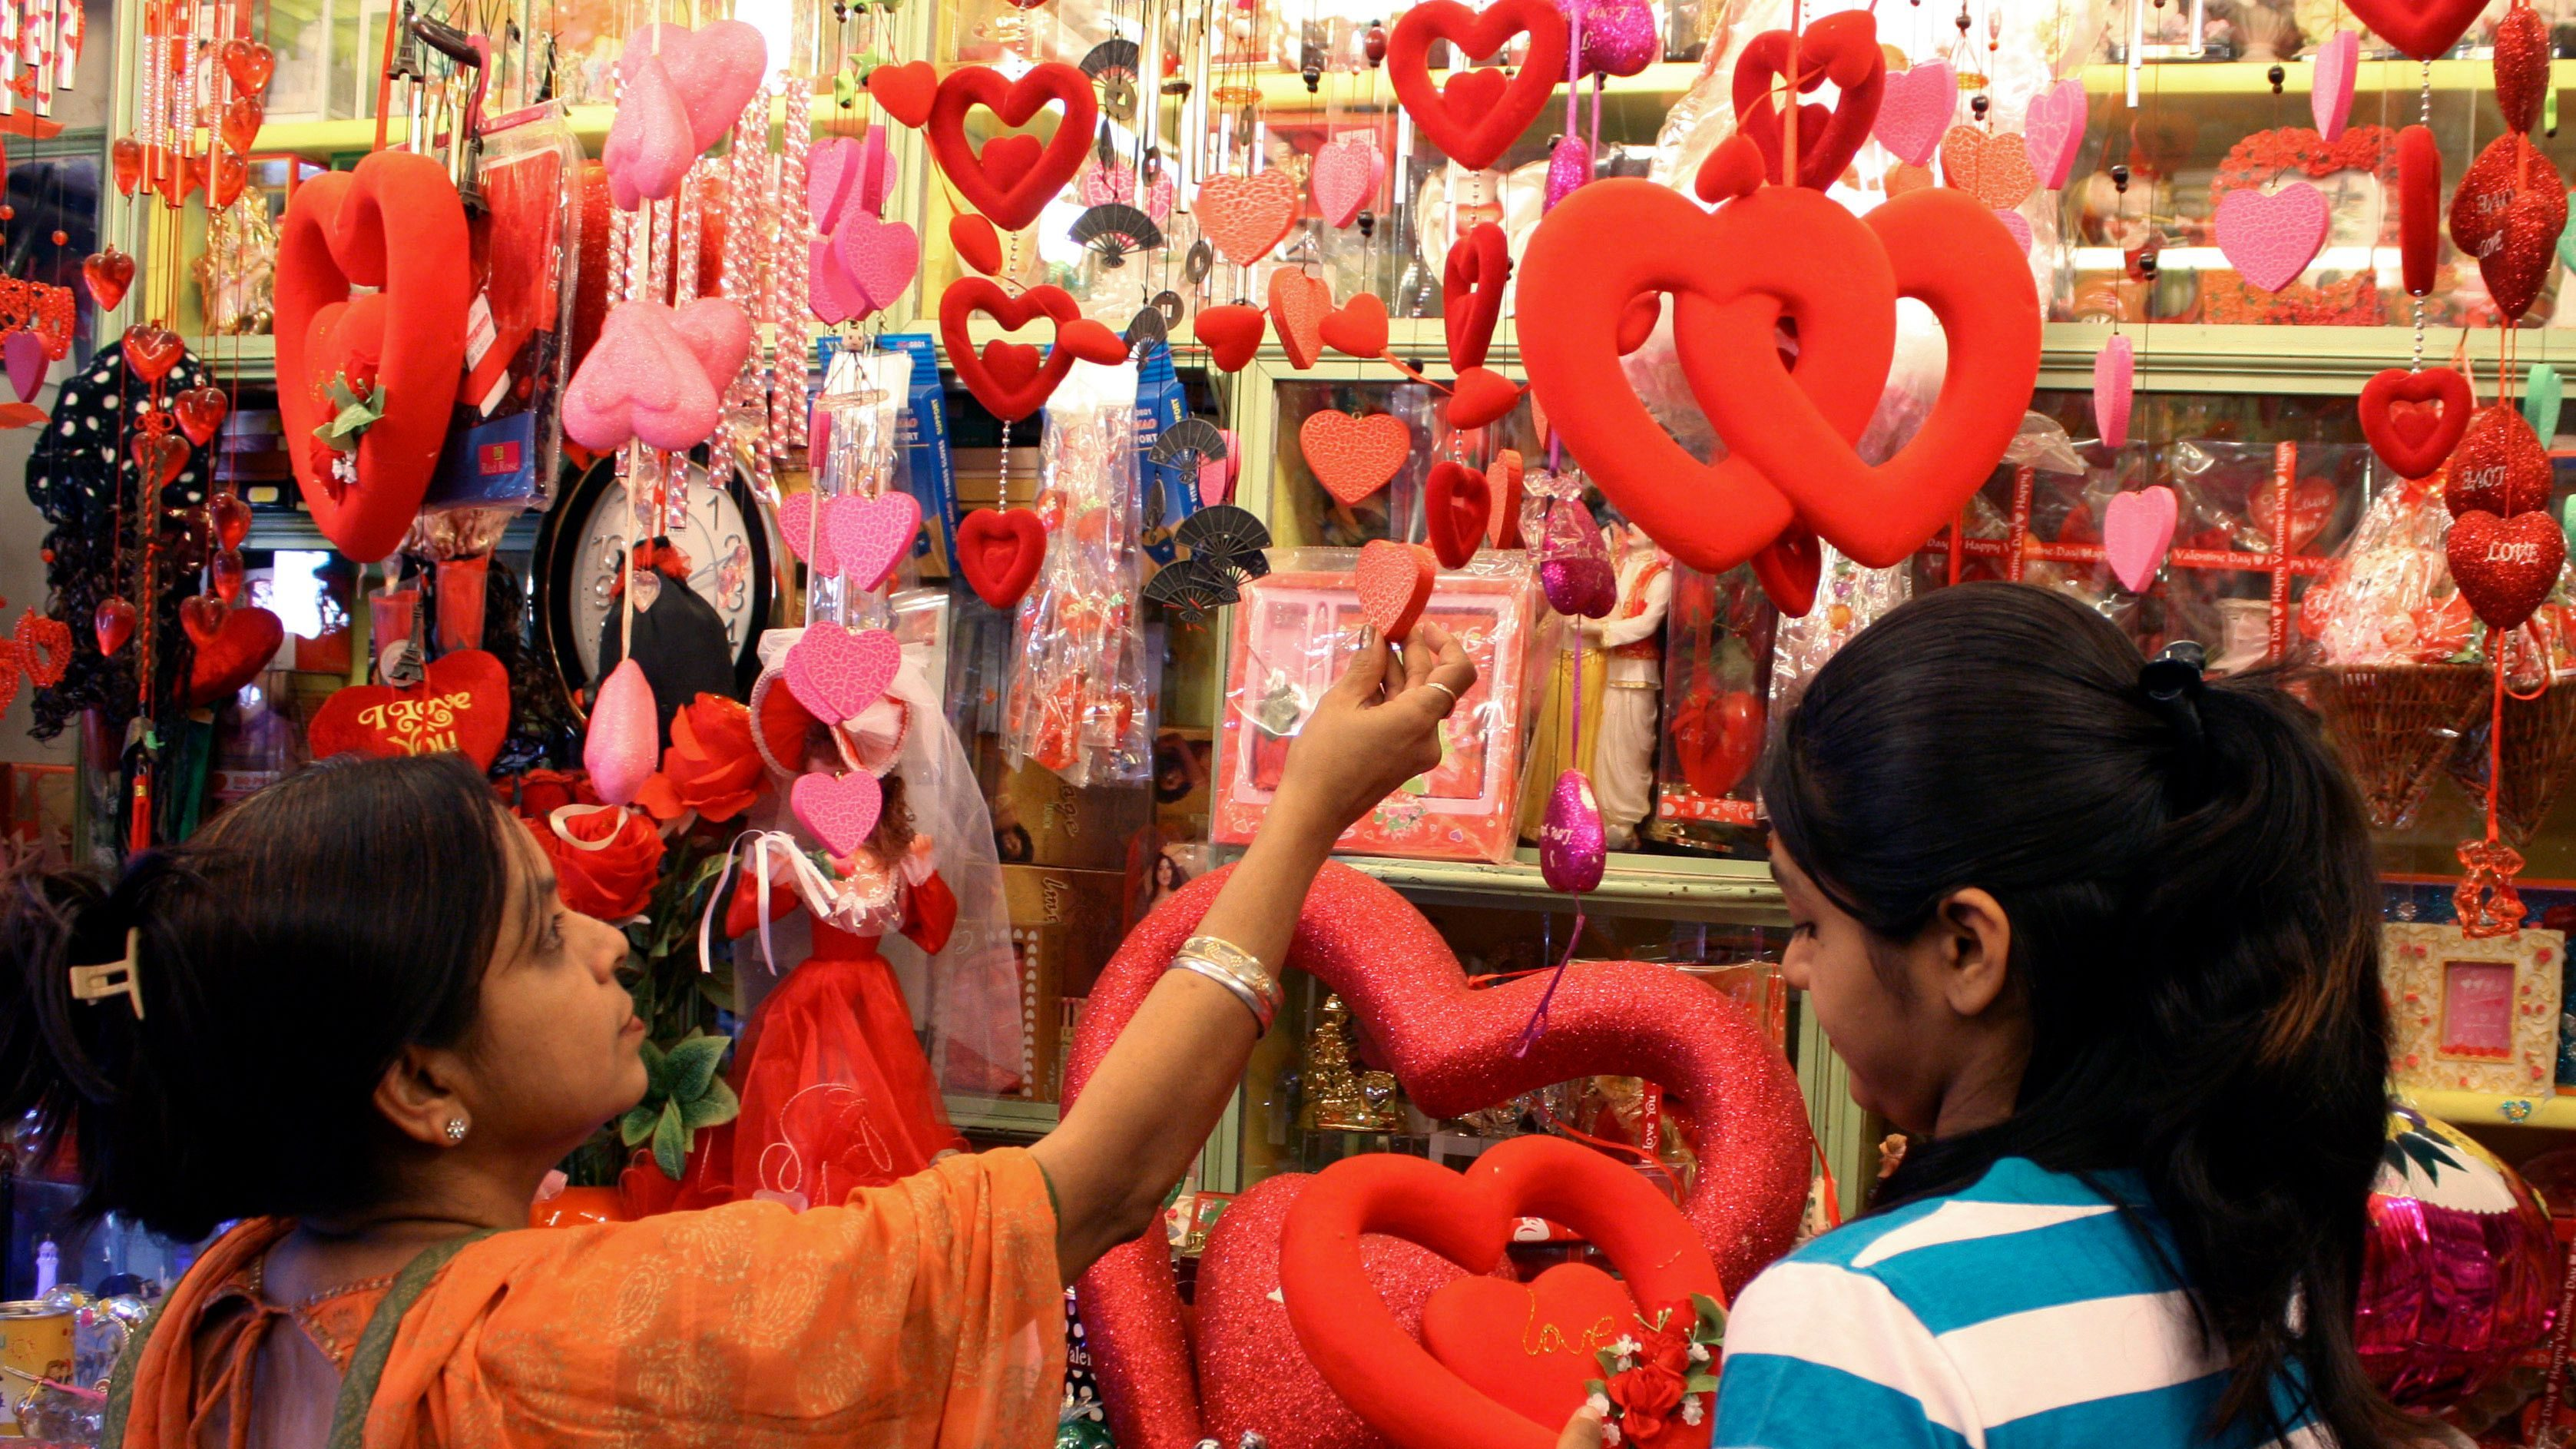 On Valentine's day, India's looking for love on Tinder, gifts on Amazon, and videos on Netflix